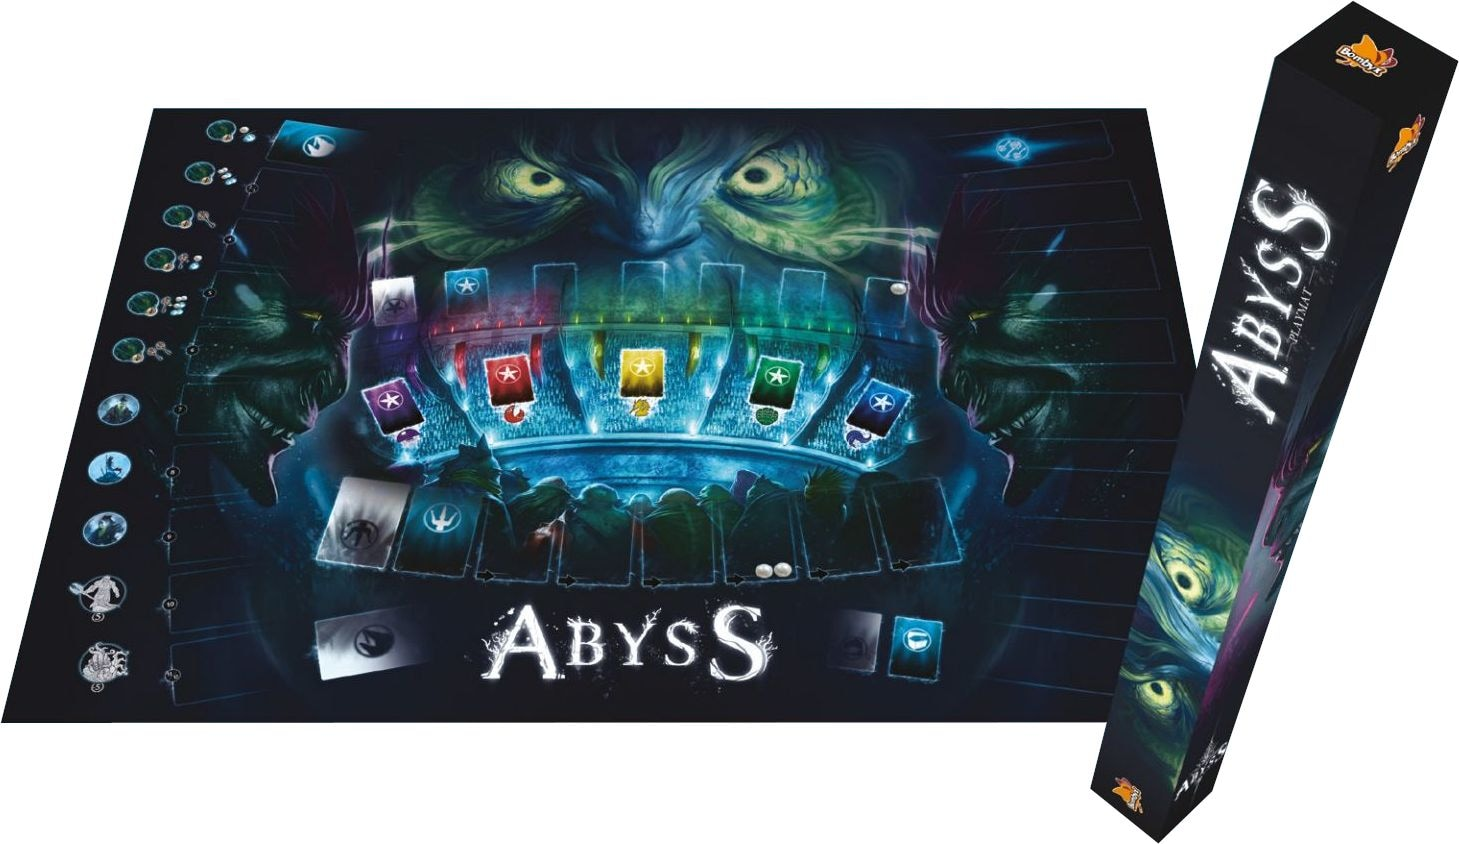 Abyss: Mata do gry - 1